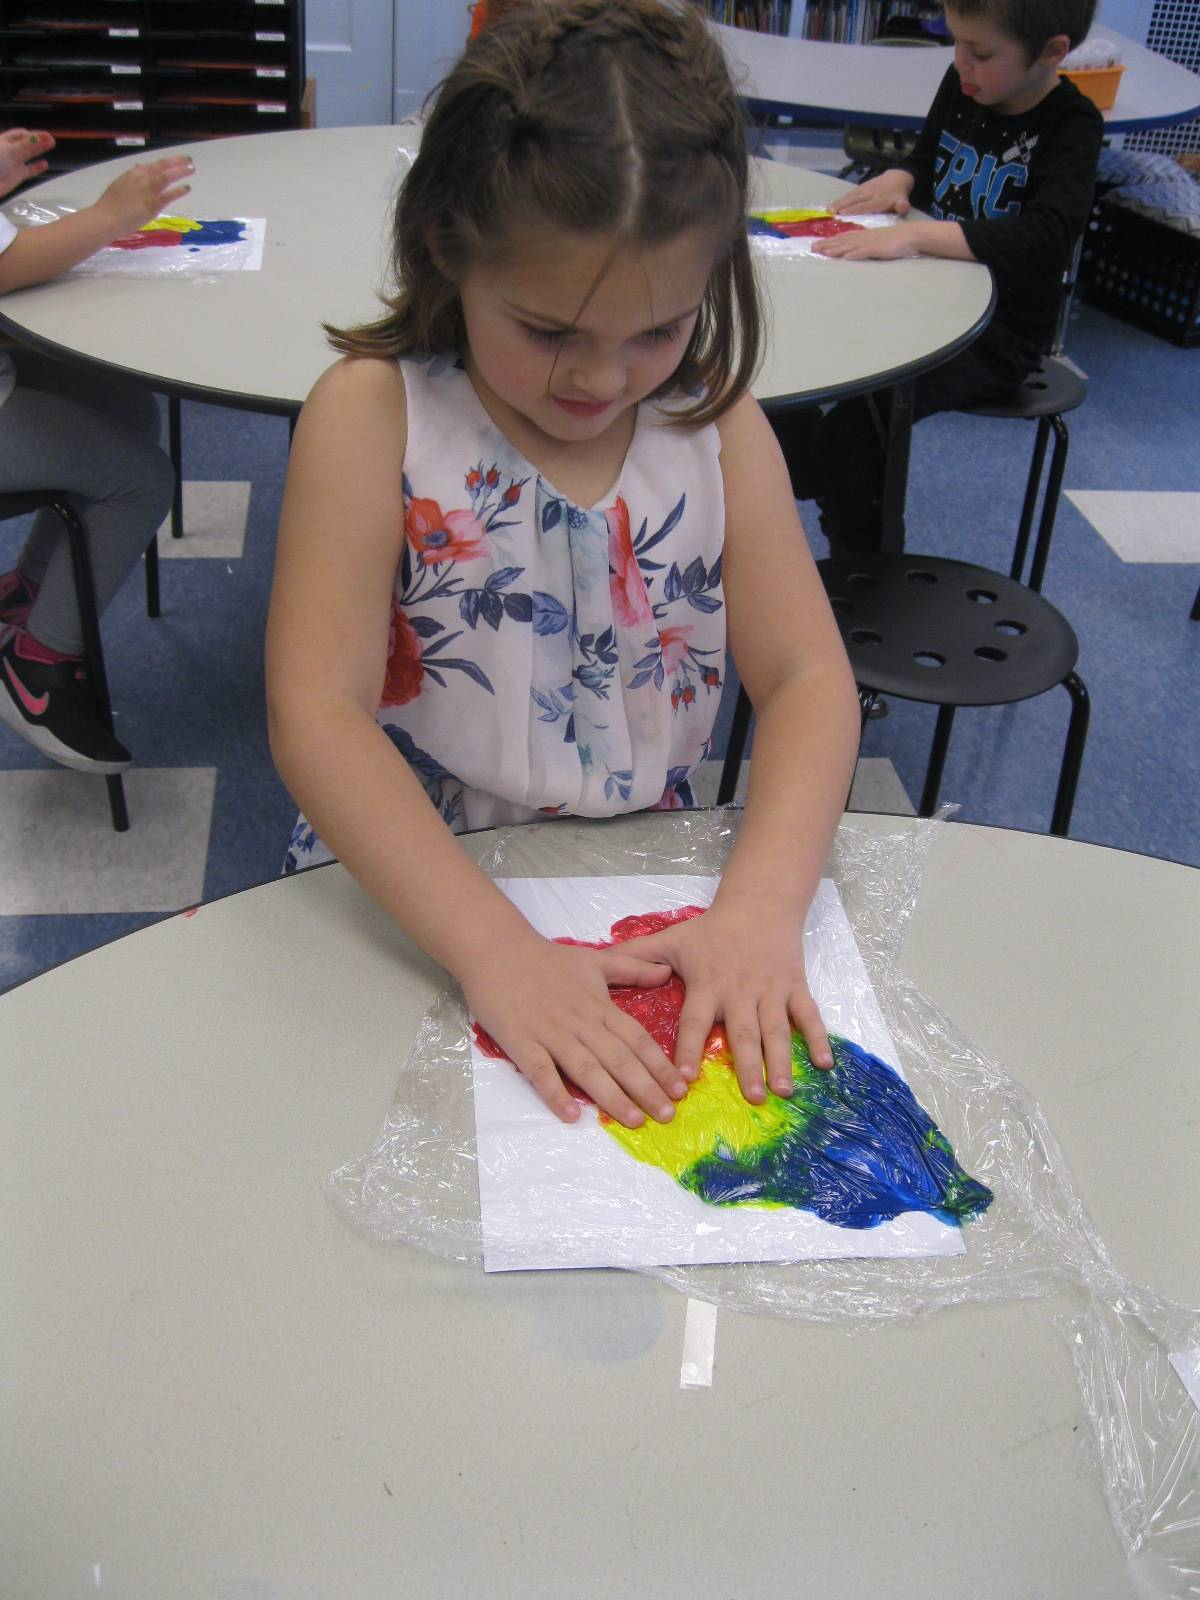 A student paints with hands